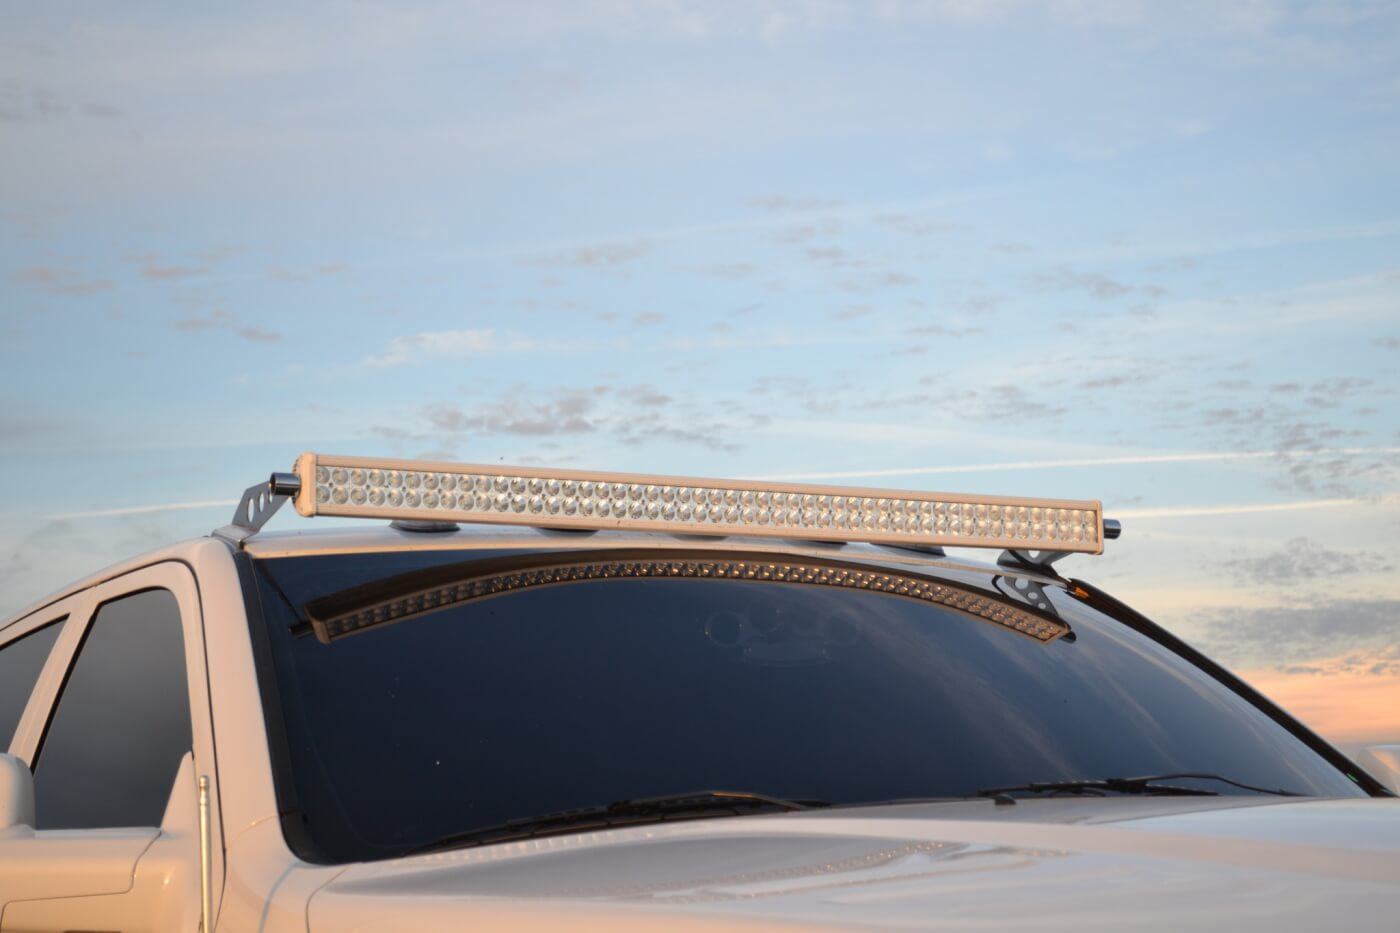 Since Joey heads to the coast on a regular basis, the lights in the grille weren't quite enough lighting when heading out into the dunes at night. To solve this, an additional light bar was mounted up on top of the truck from Rigid Industries.